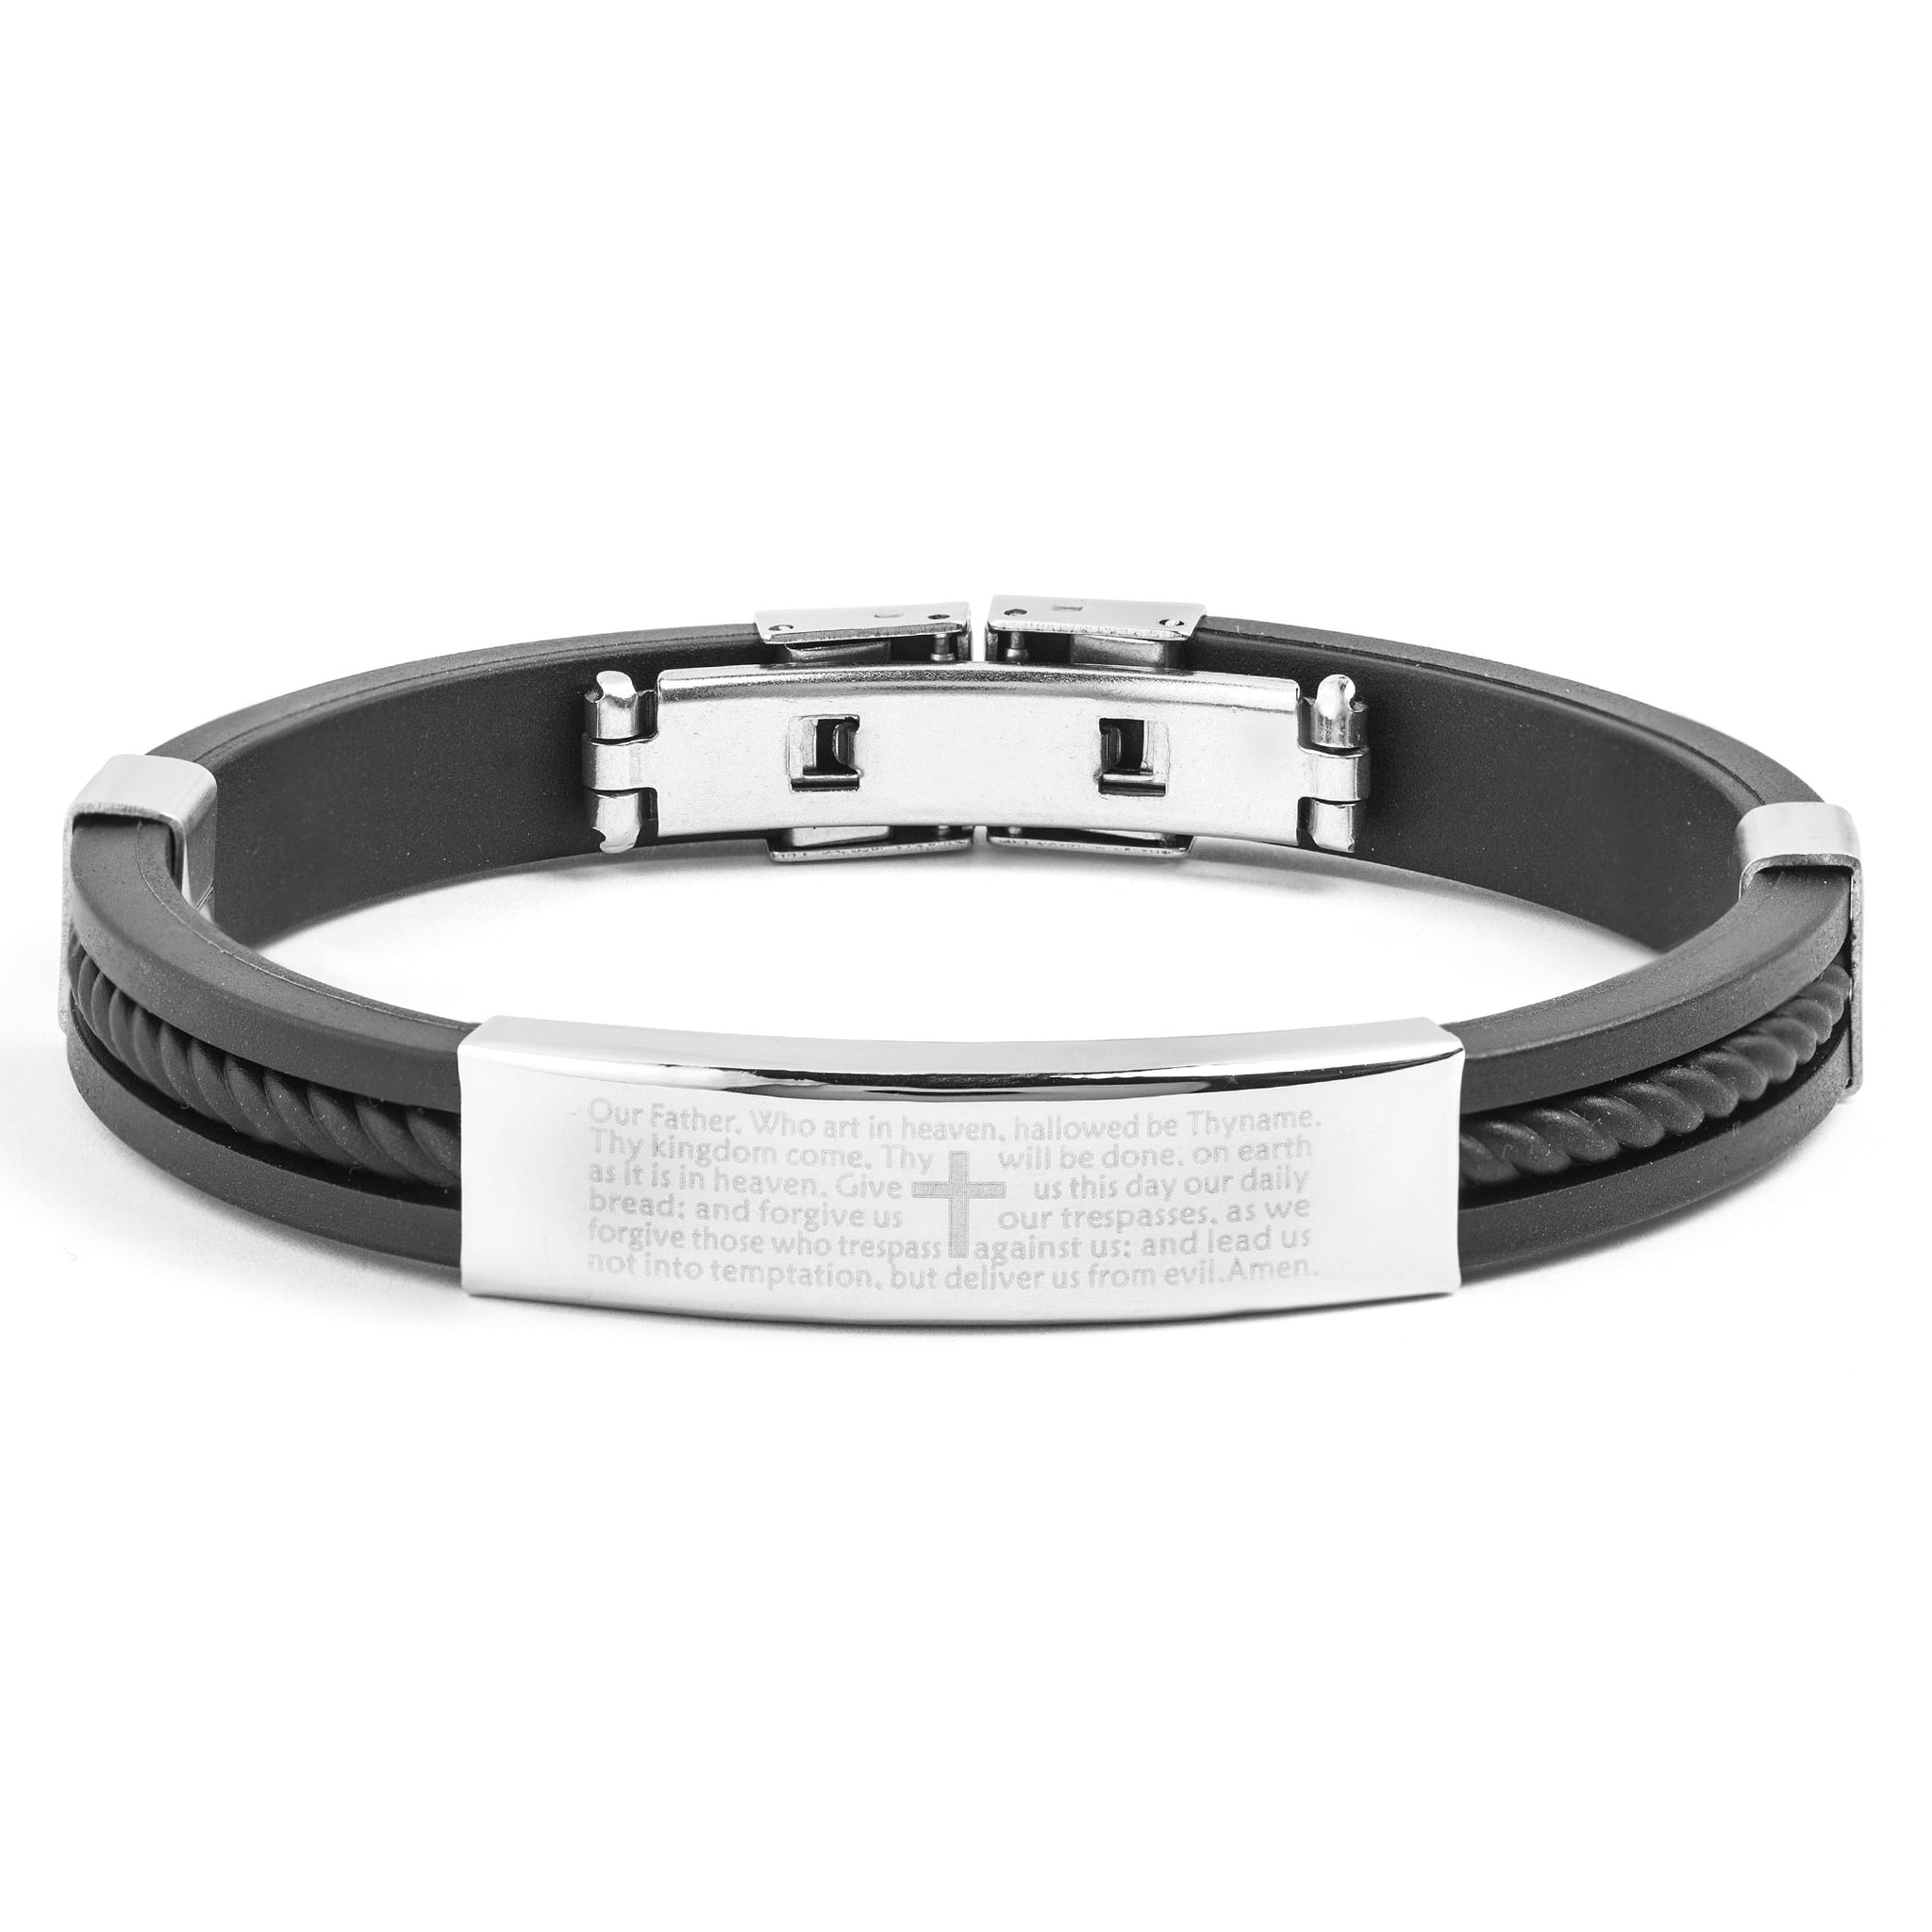 Crucible Men's Stainless Steel Polished Lord's Prayer ID Plate Rubber  Bracelet